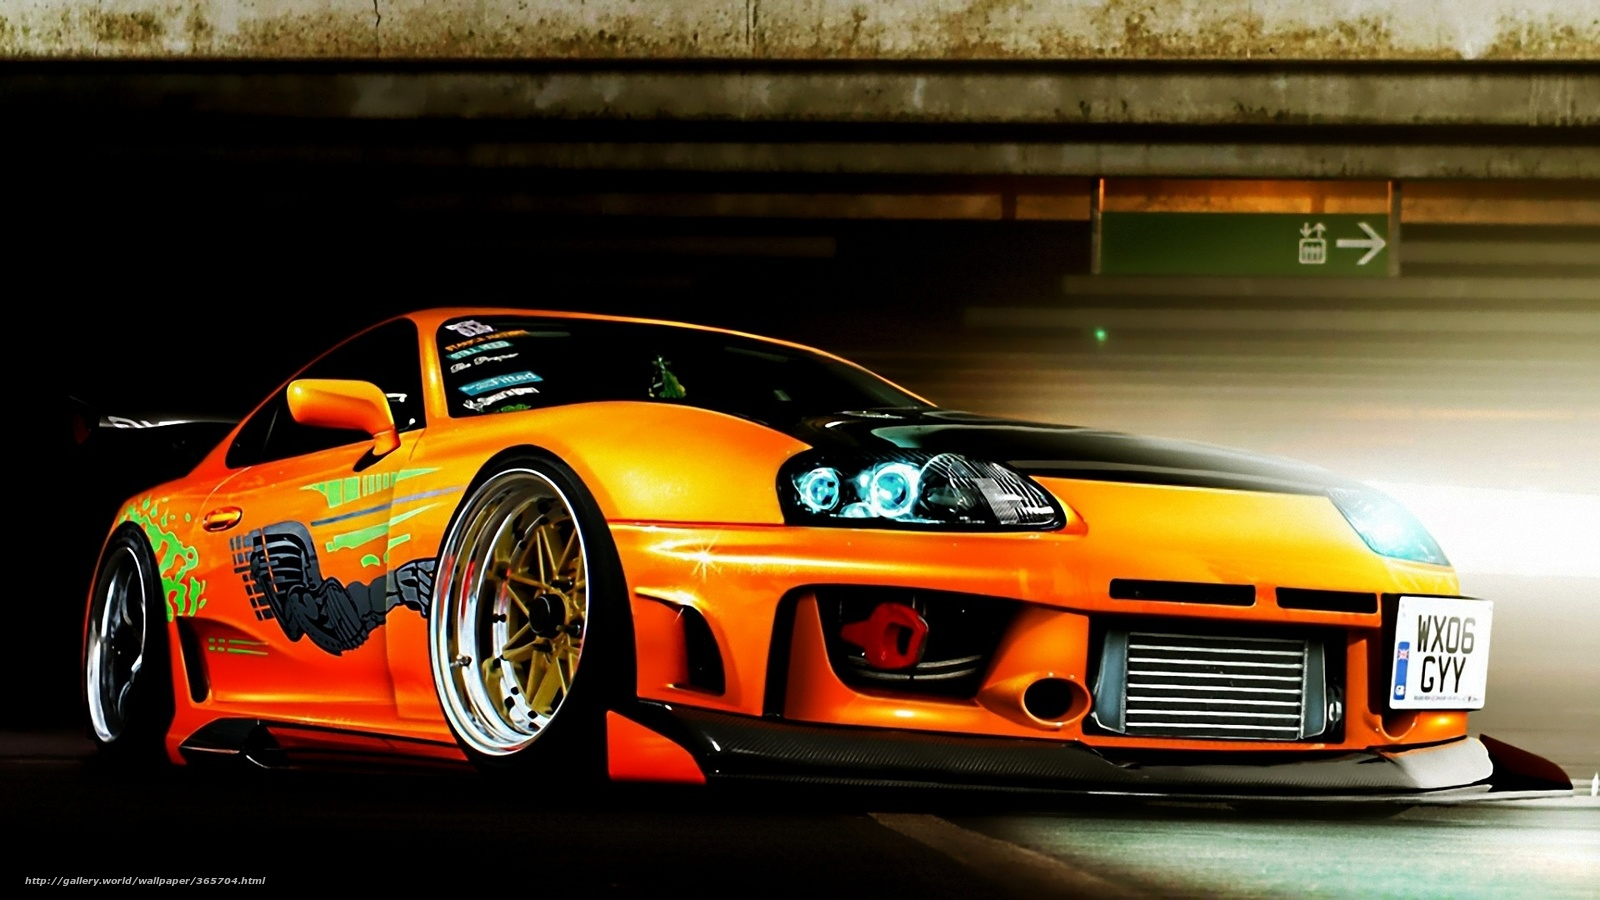 Toyota Supra Cars Wallpapers for Desktop